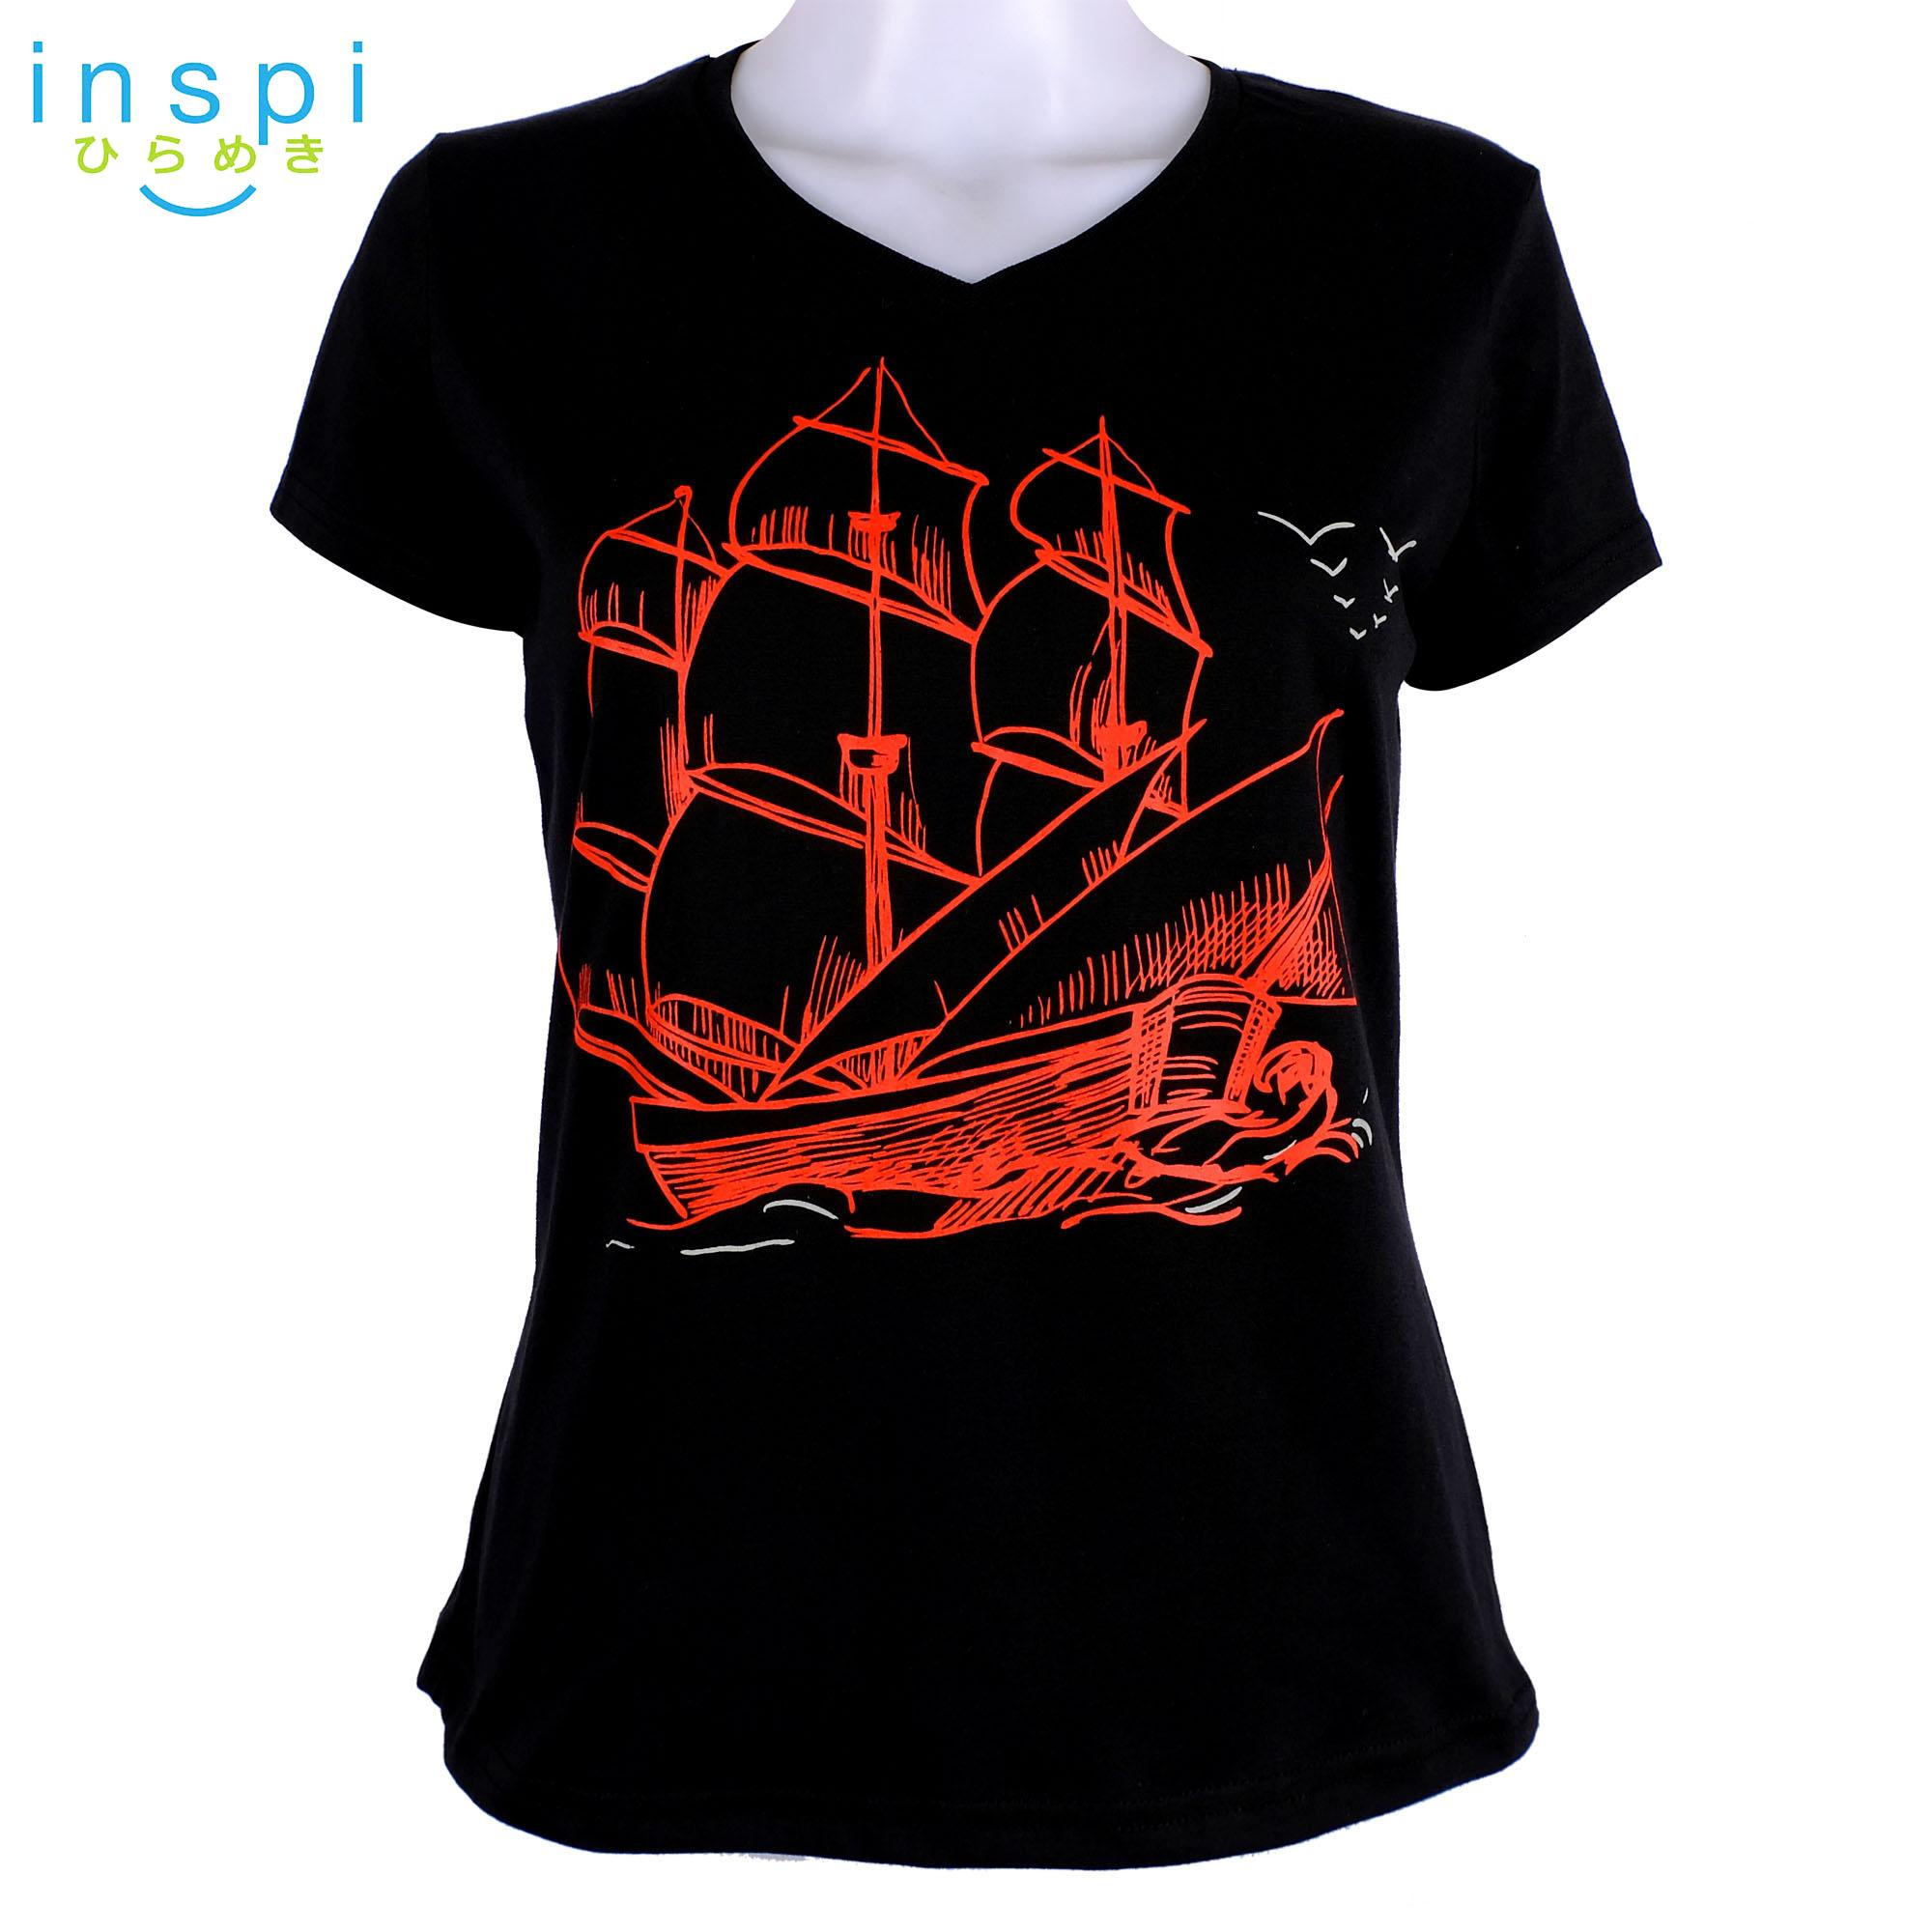 INSPI Tees Ladies Semi Fit Red Boat (Black) tshirt printed graphic tee t  shirt 05082a8855